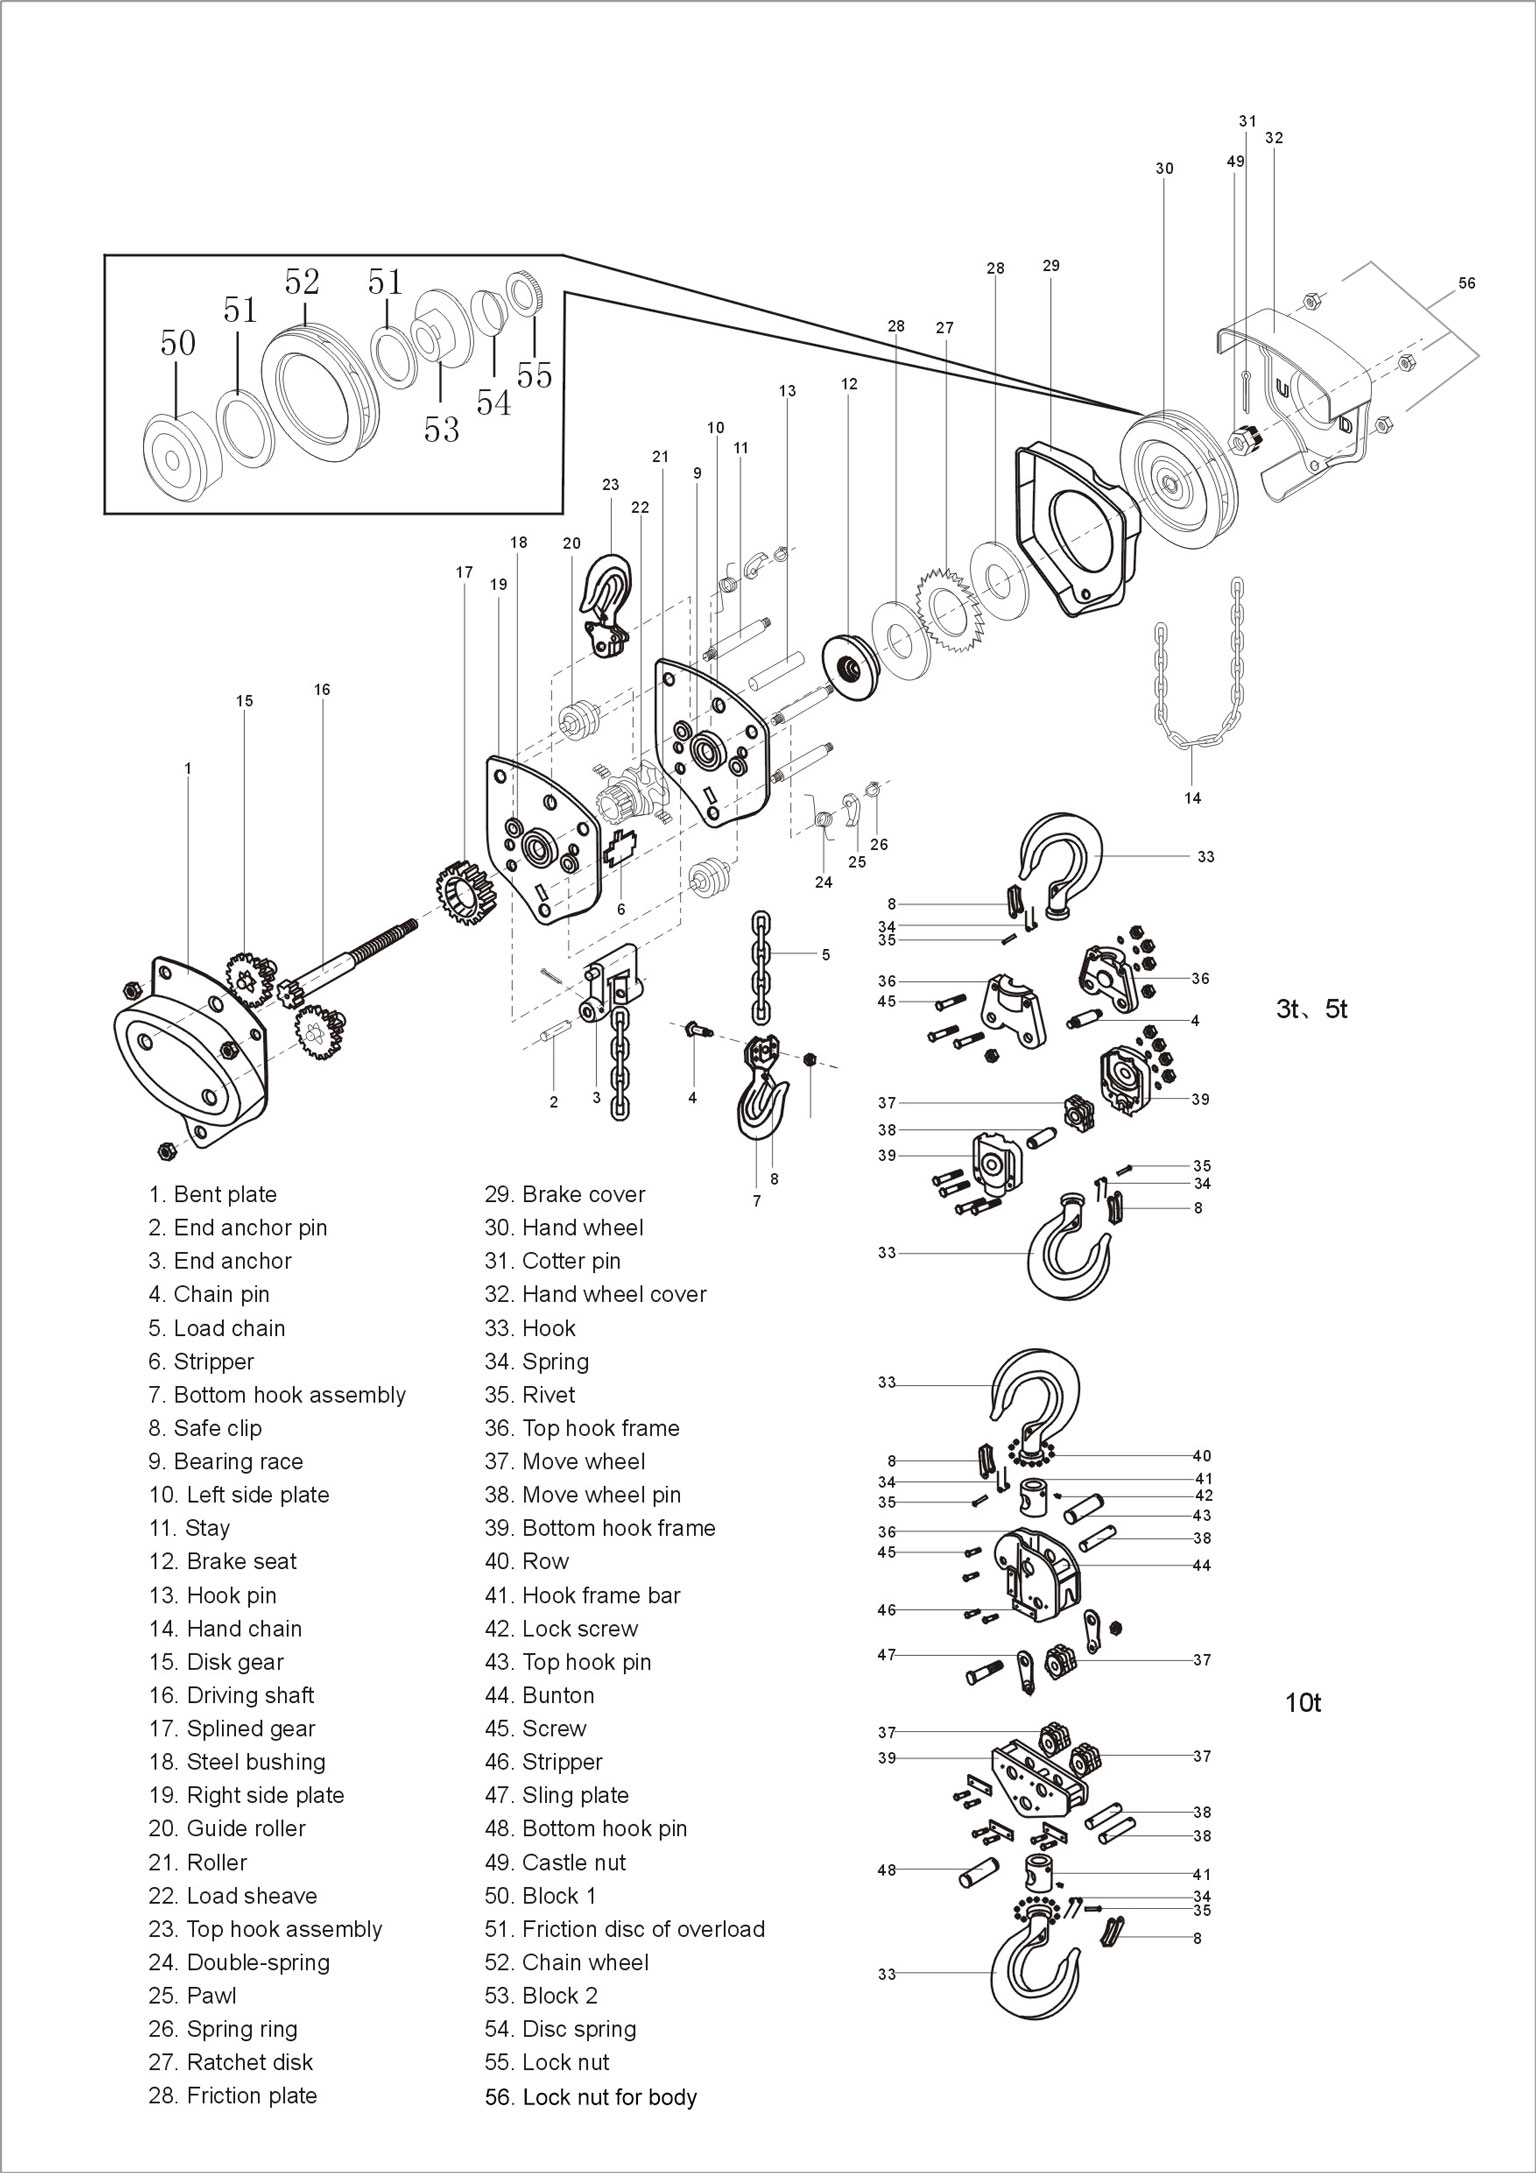 Premium Tool Abrasives Chain Hoists 1 Ton Cm Hoist Wiring Diagram Pta Manual